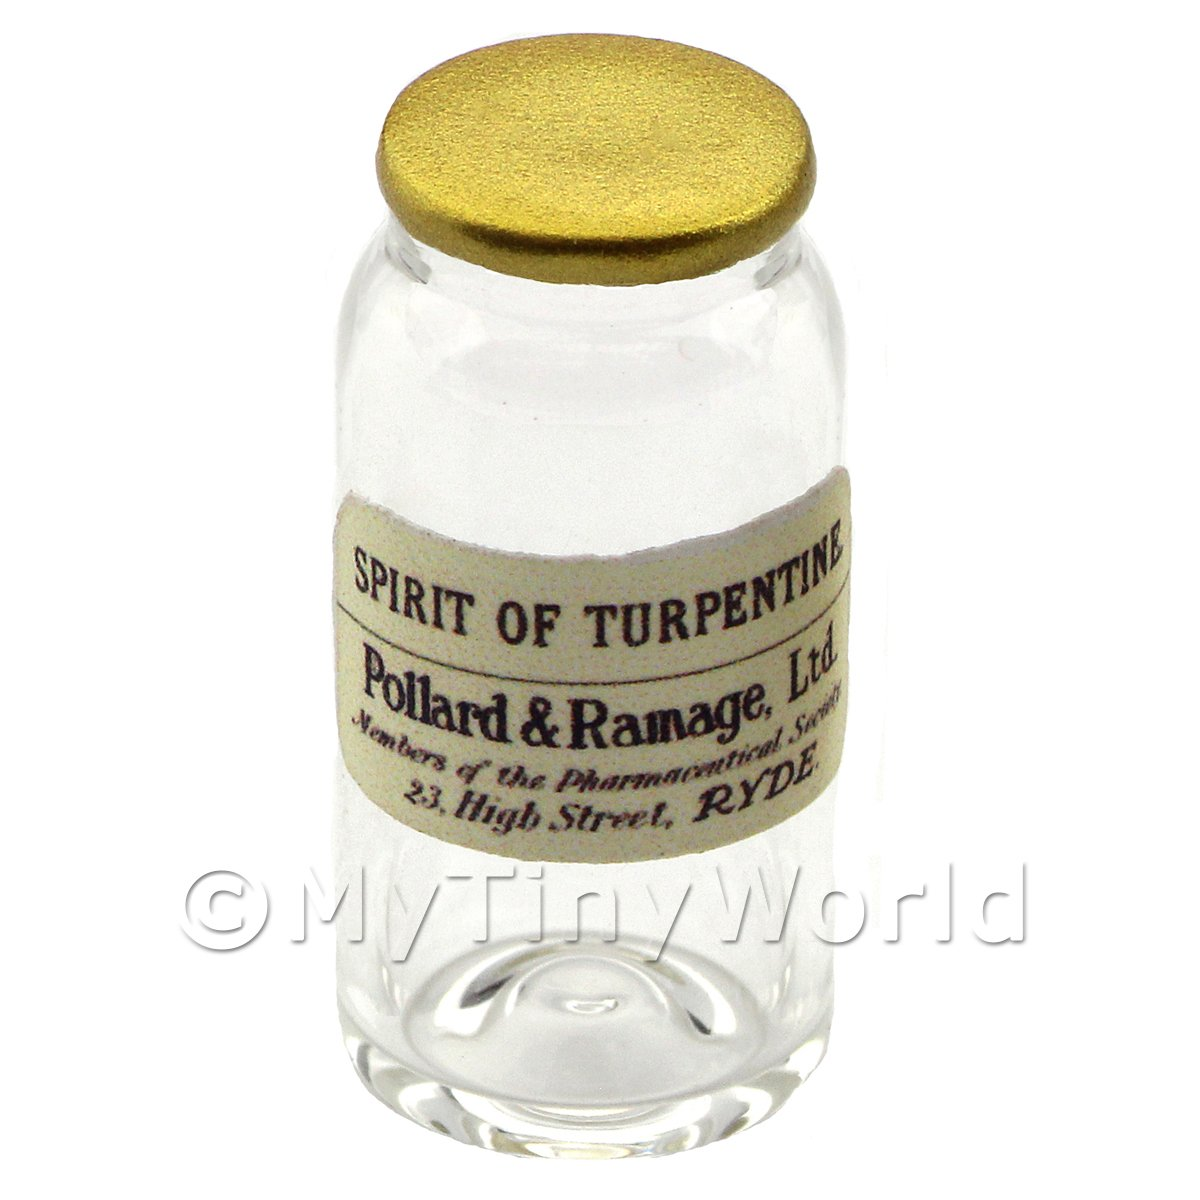 Miniature Spirit of Turpentine Glass Apothecary Bulk Jar